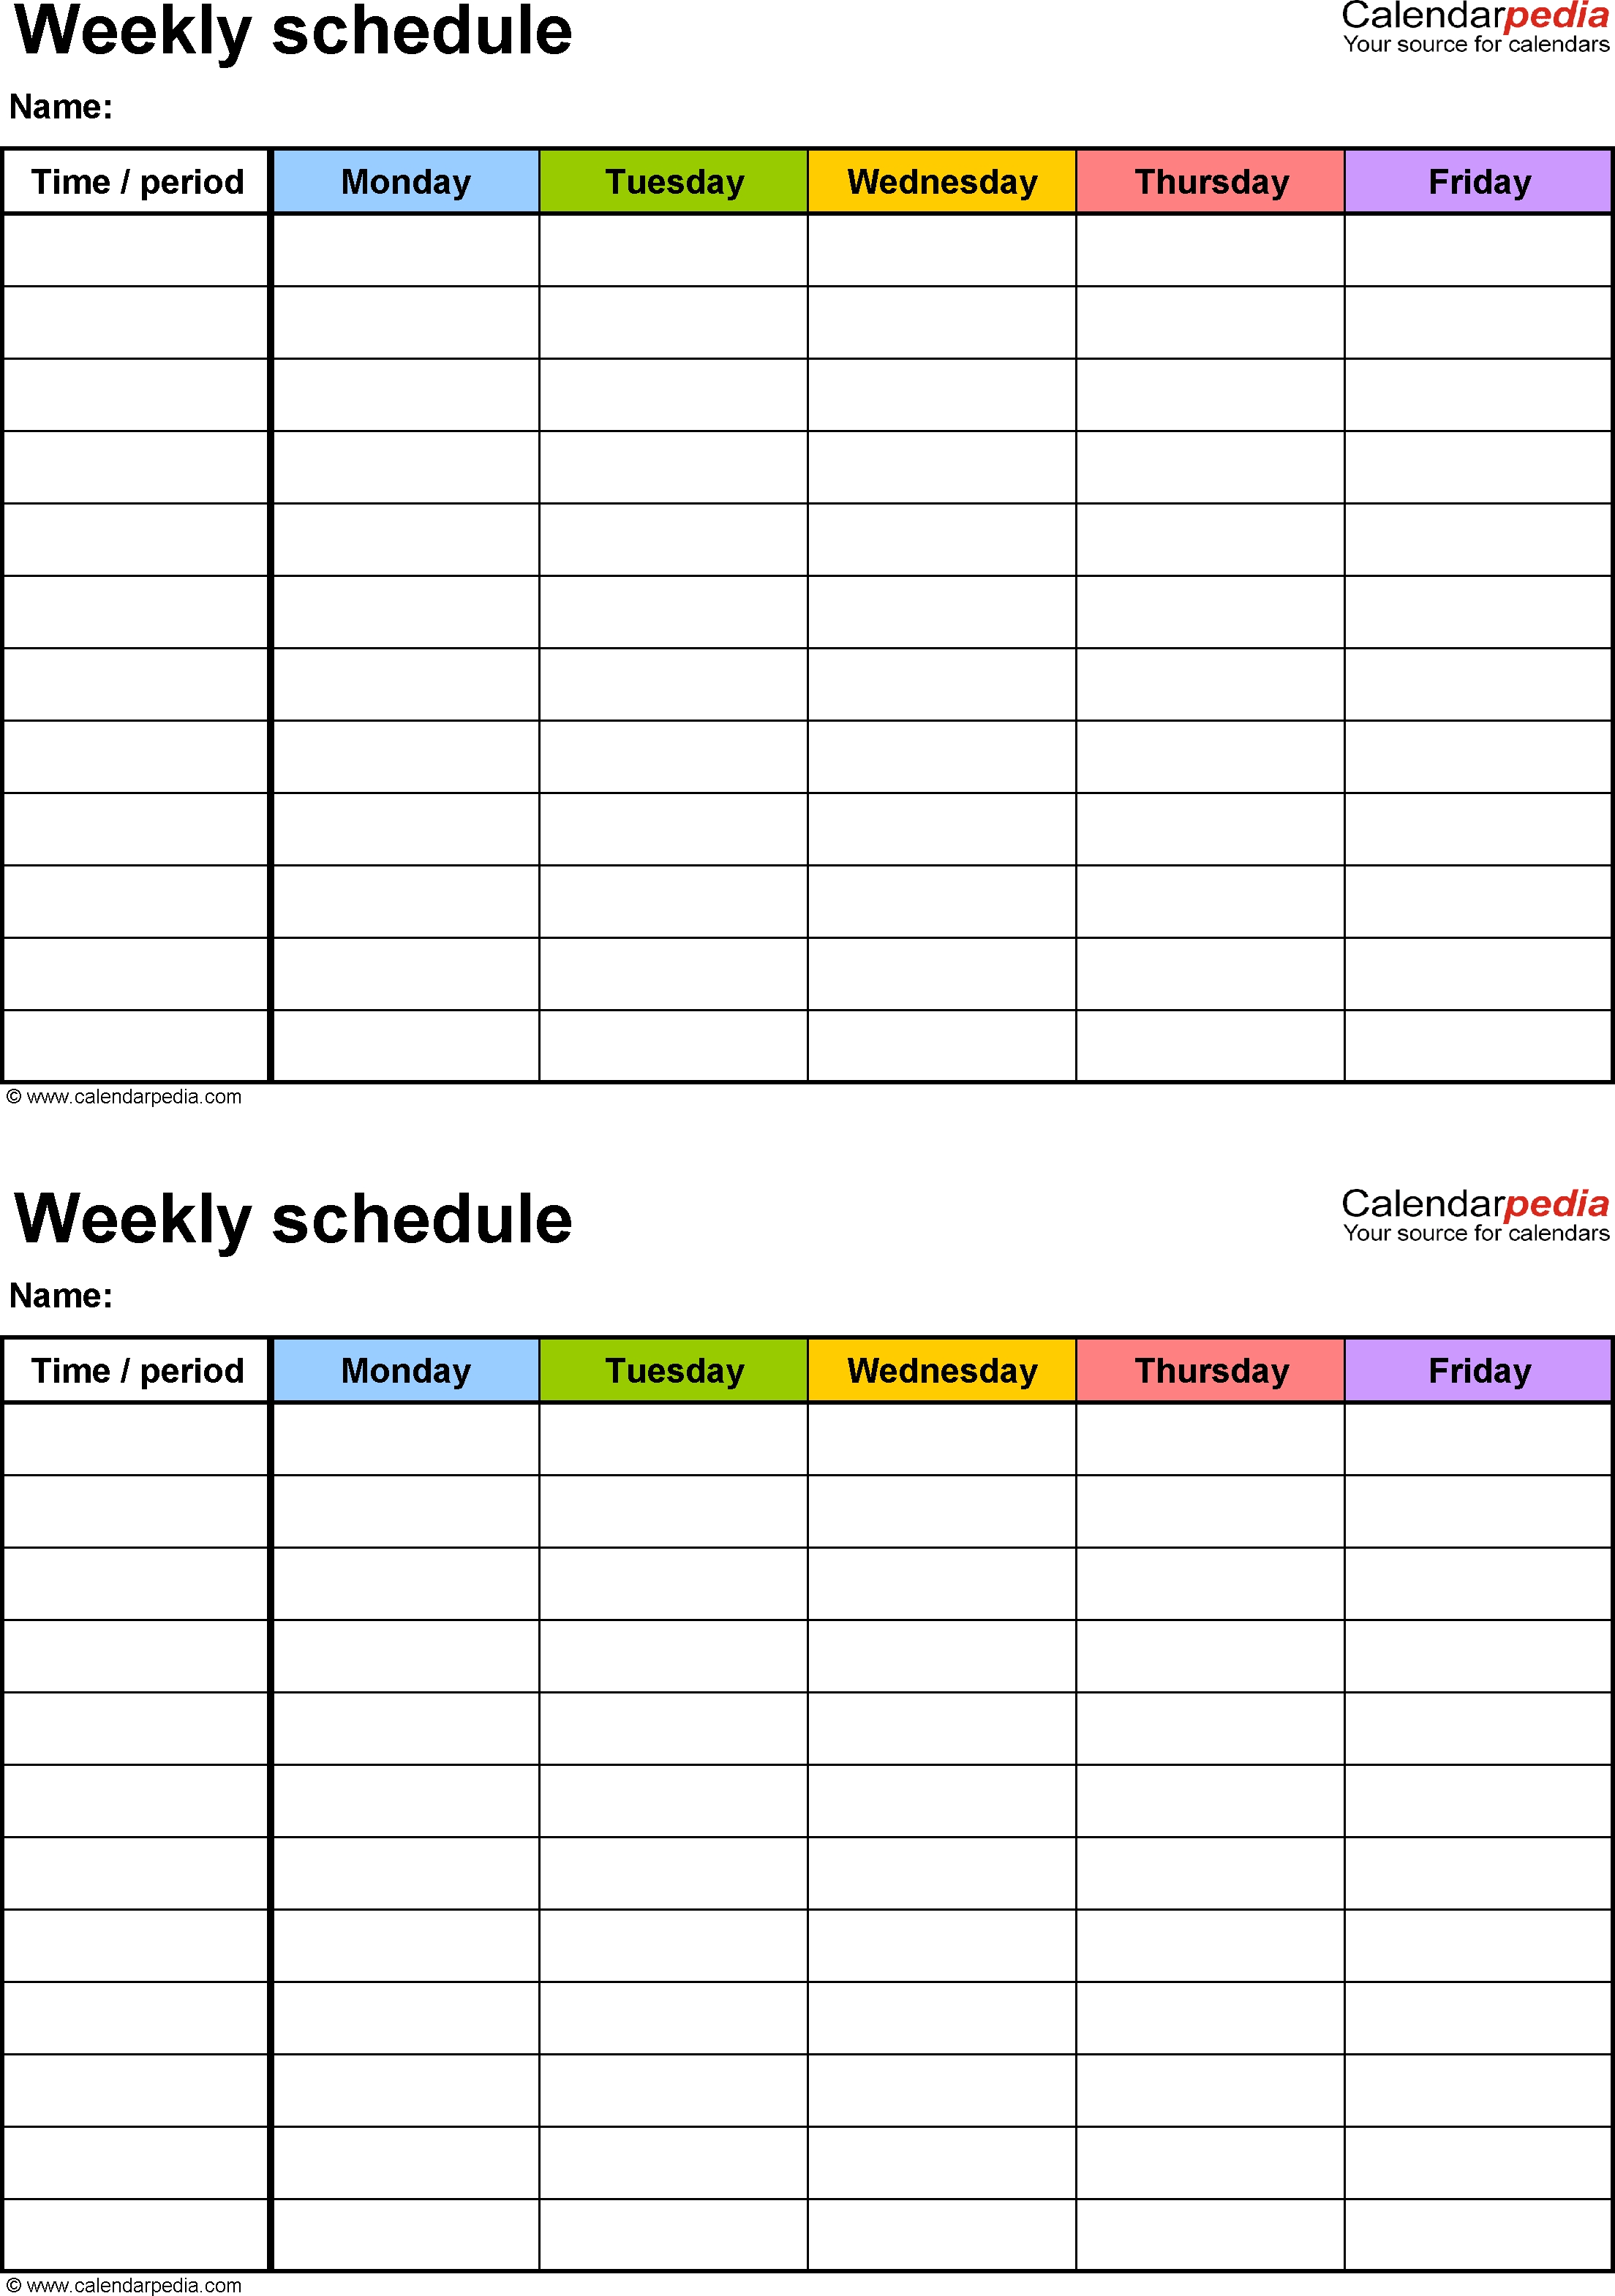 Free Weekly Schedule Templates For Word - 18 Templates  Fill In Blank Weekly Calendar Templates